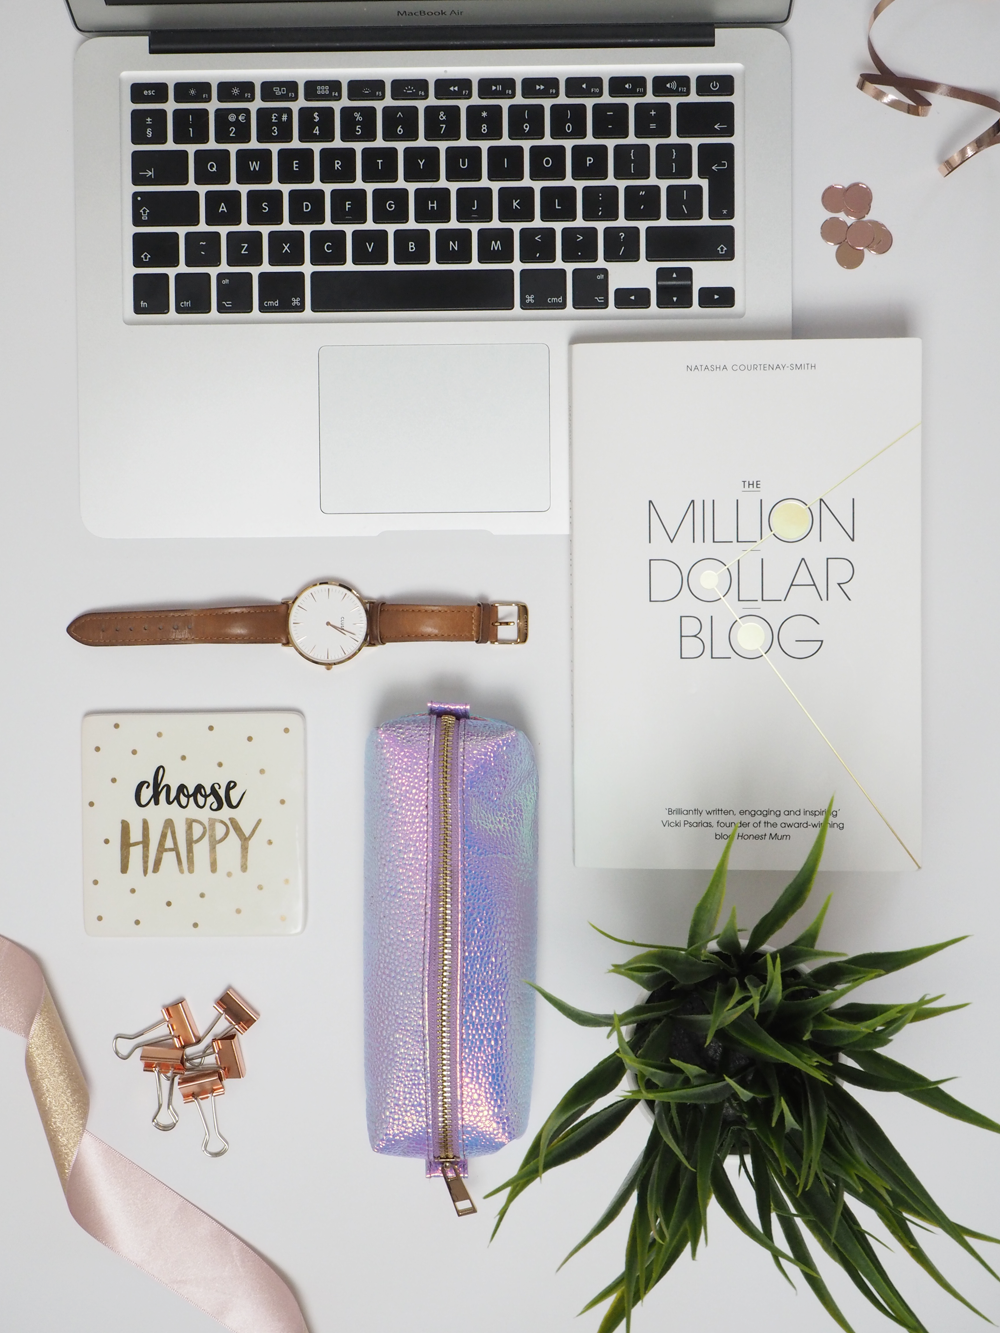 How to earn money from your blog